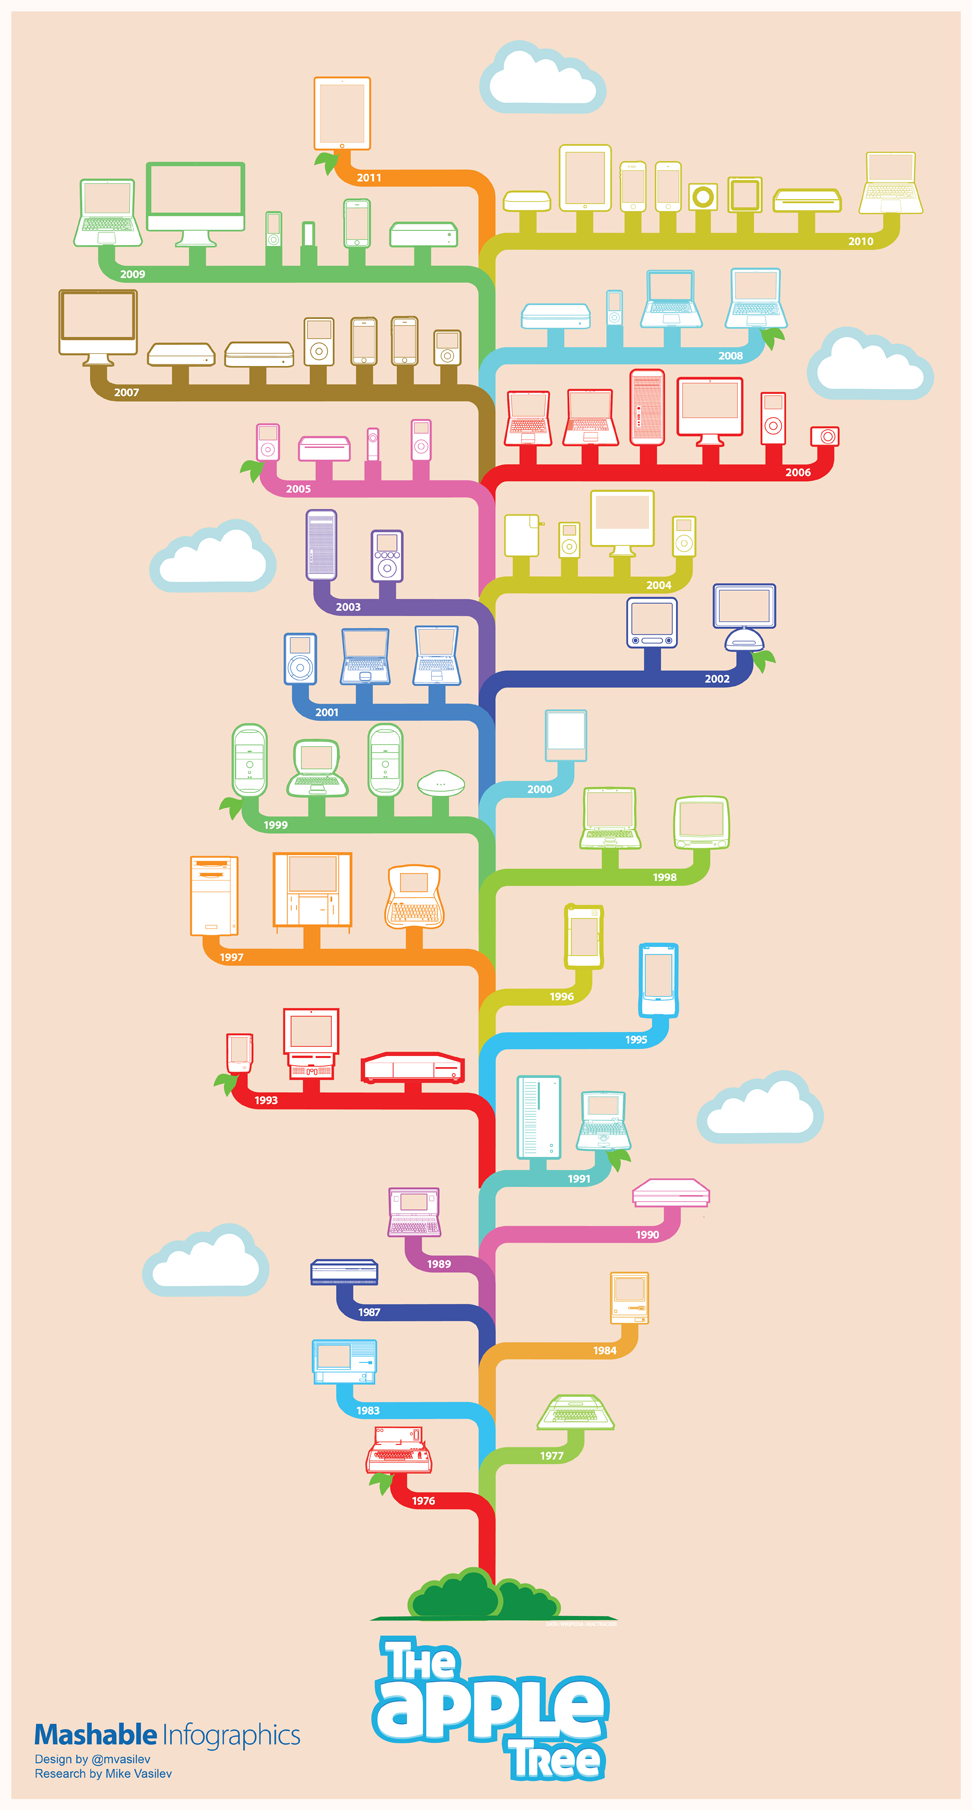 35-Years of Apple Design: The 'Apple' Tree [Infographic]